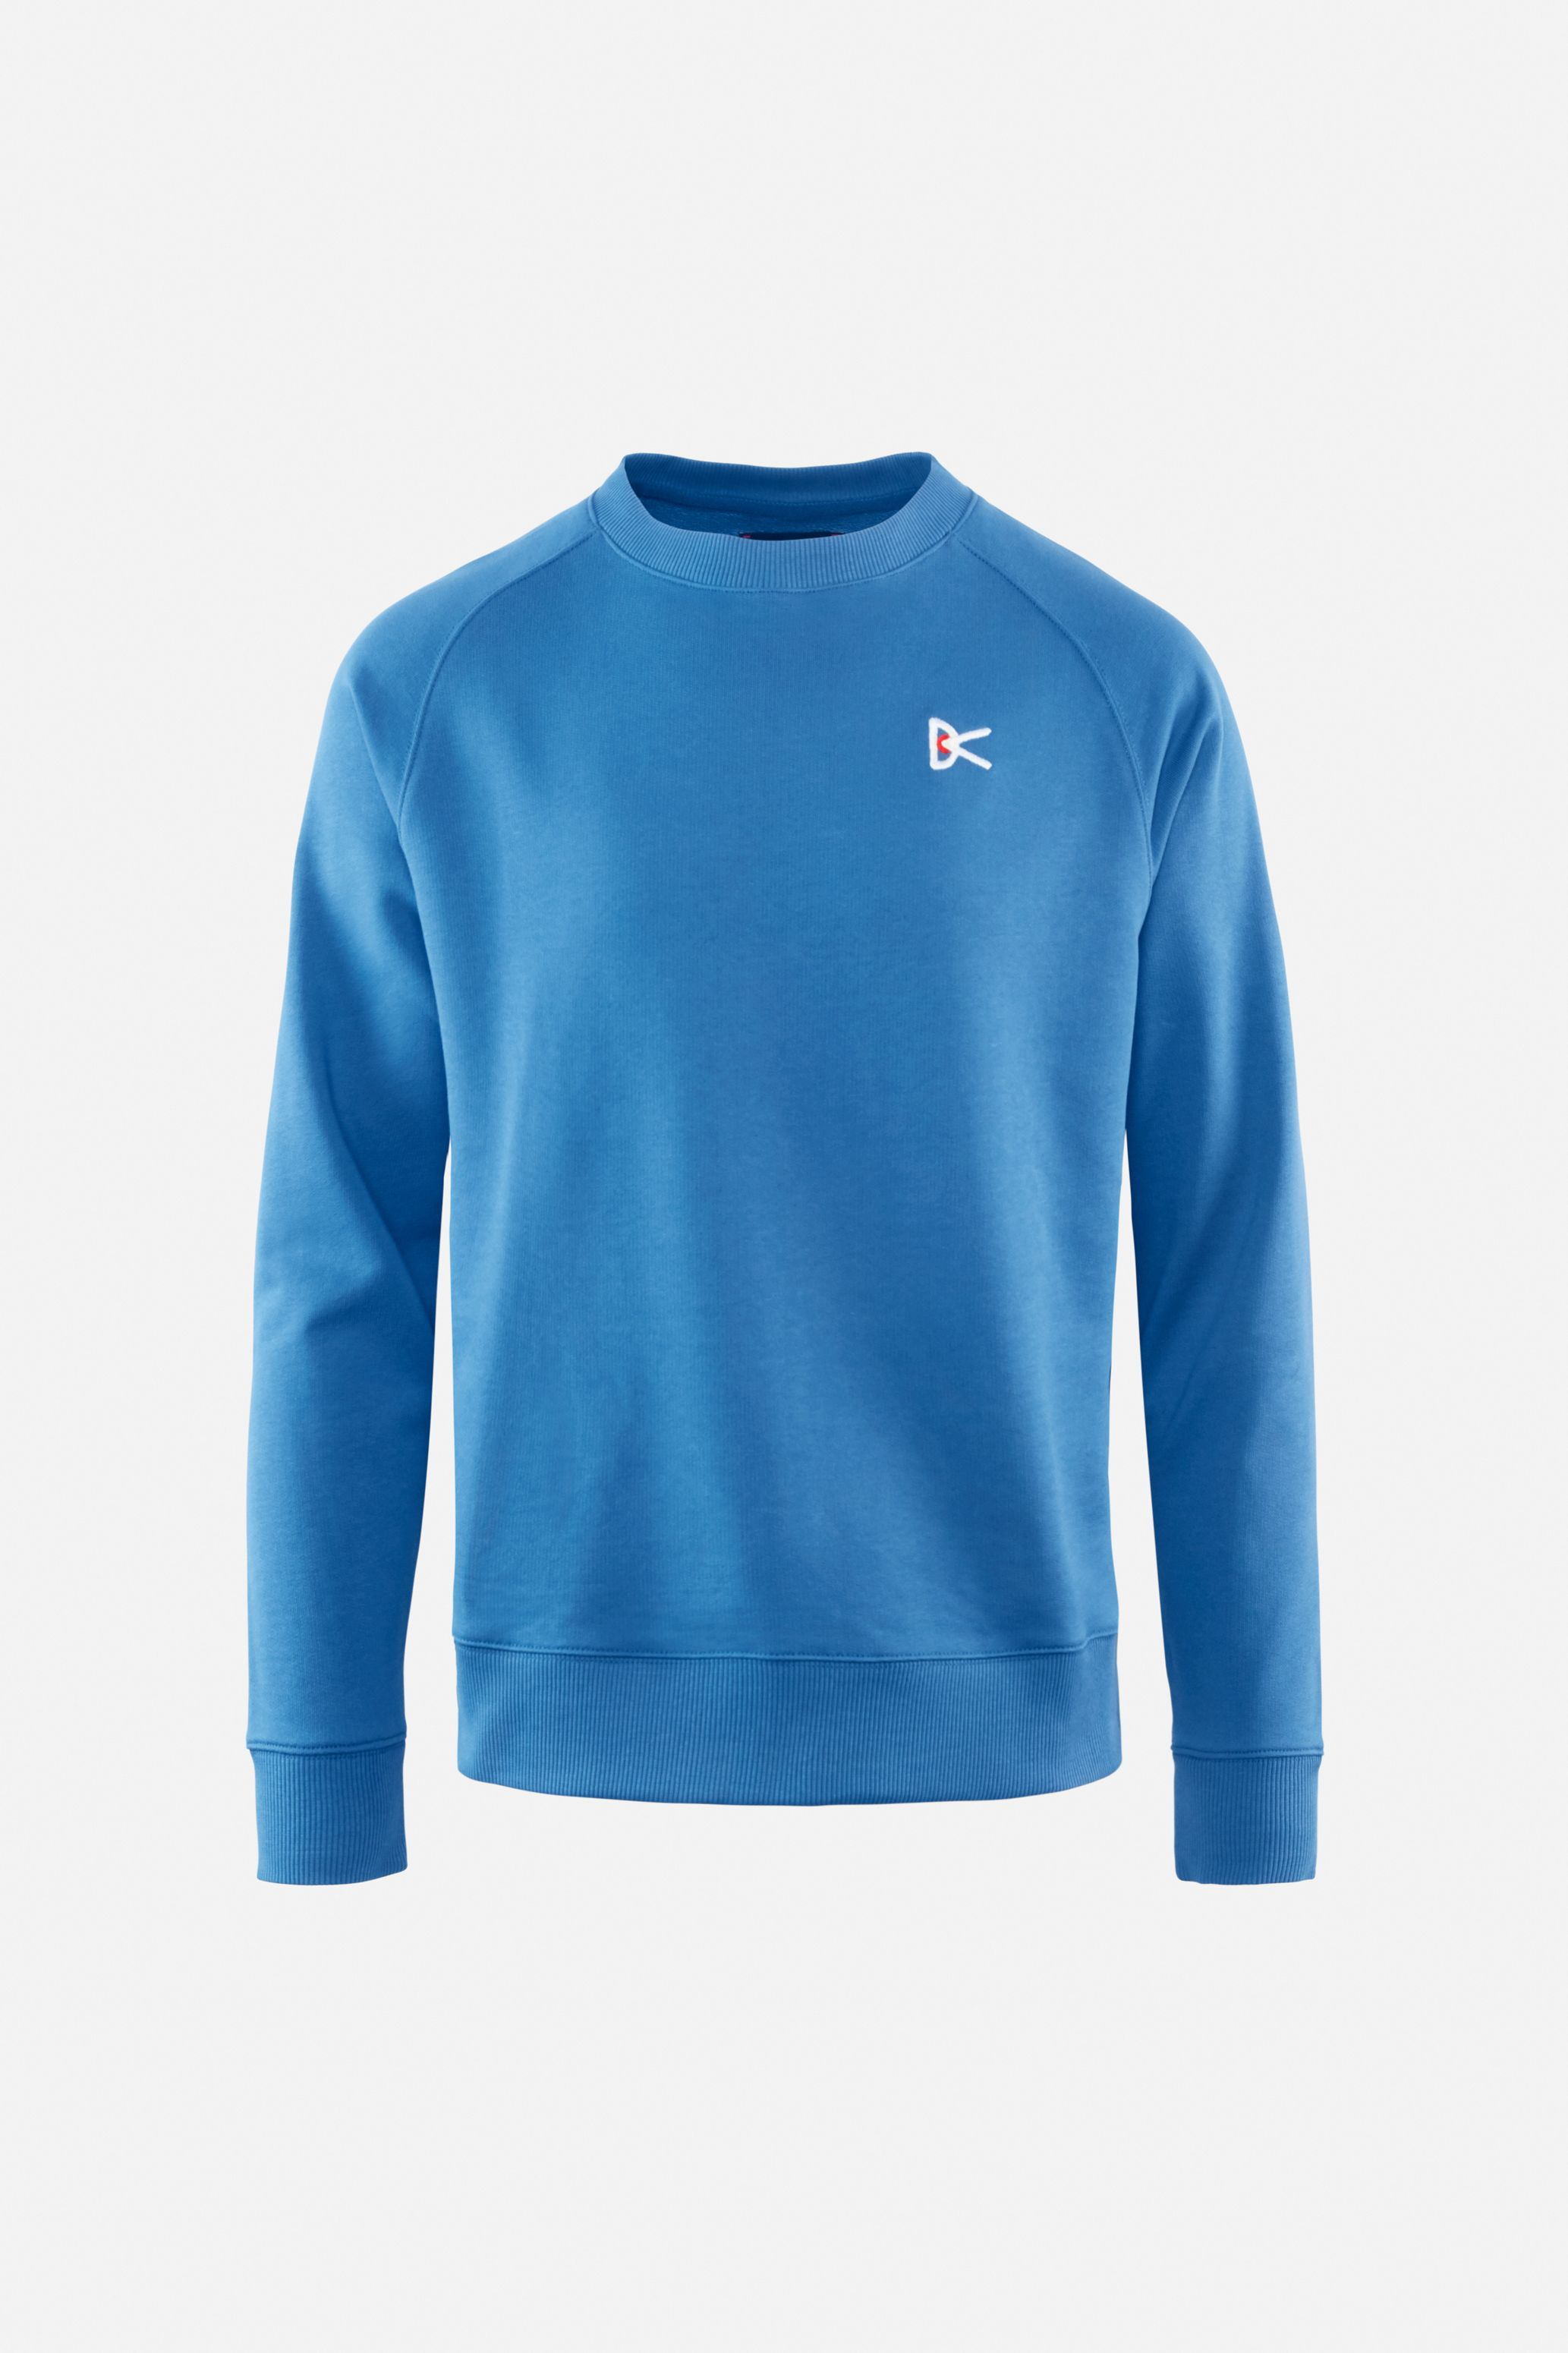 Sati Crew Neck Sweatshirt, Blue